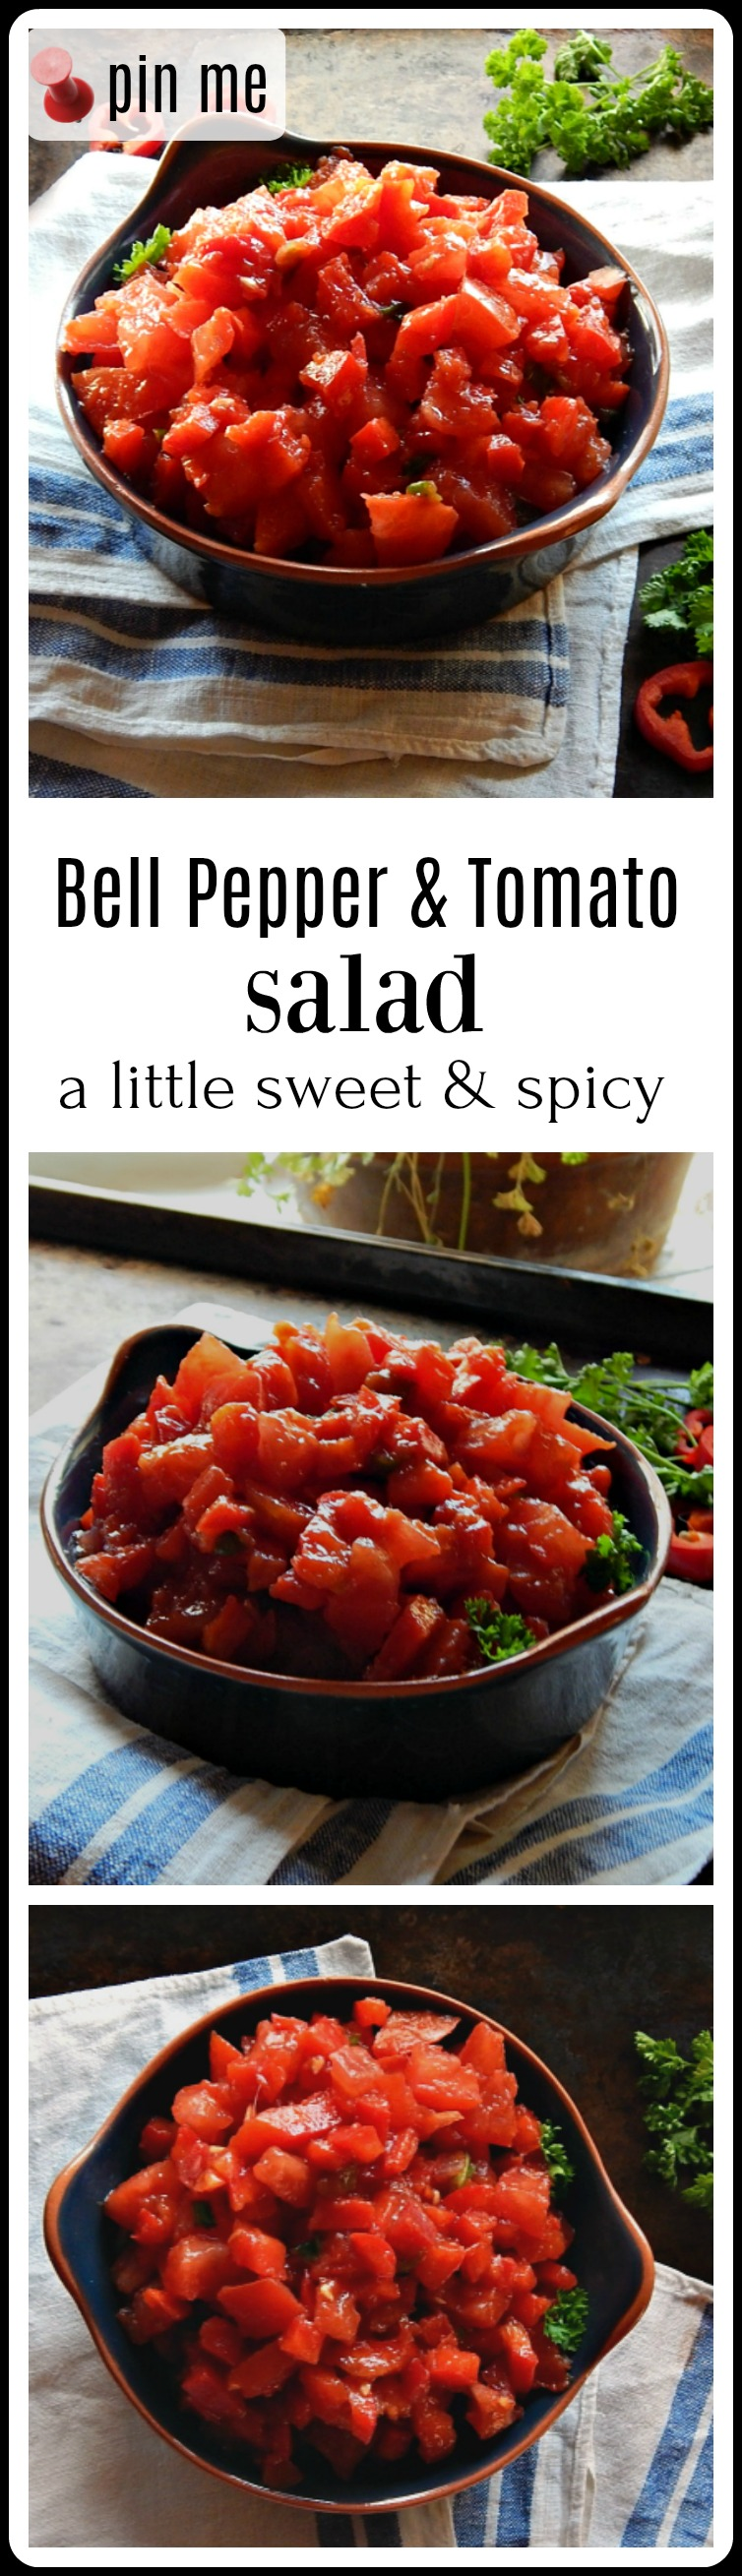 Bell Pepper and Tomato Salad